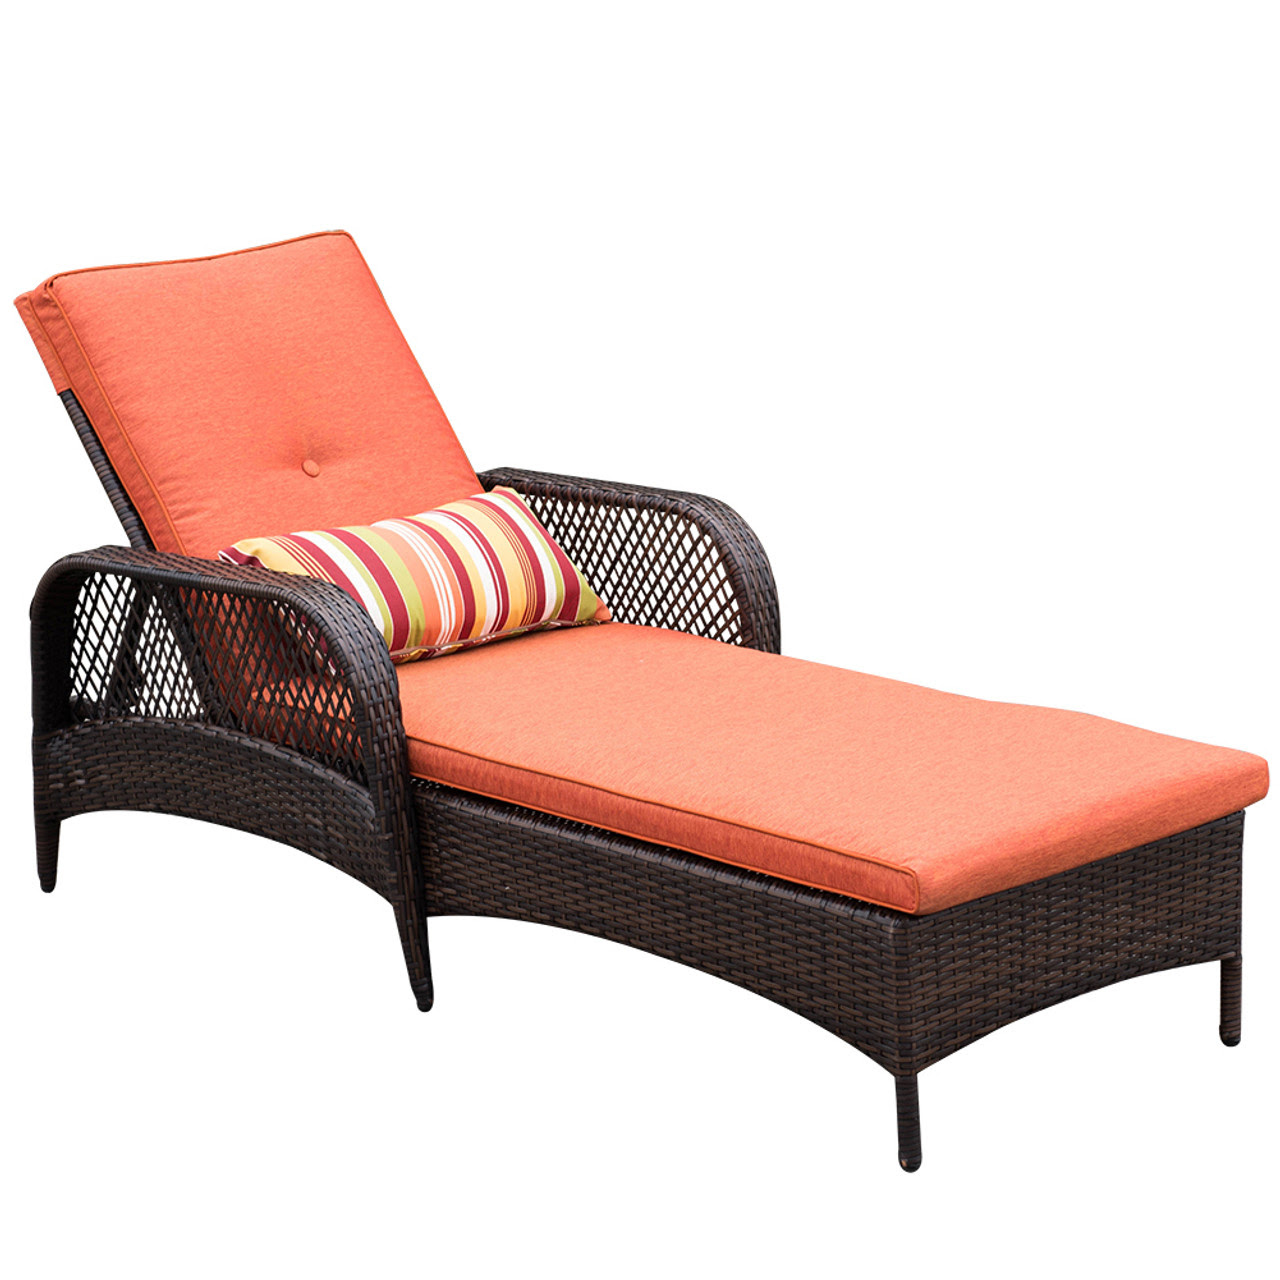 Luxury Reclining Brown Wicker Chaise Lounge Chair Outdoor ...